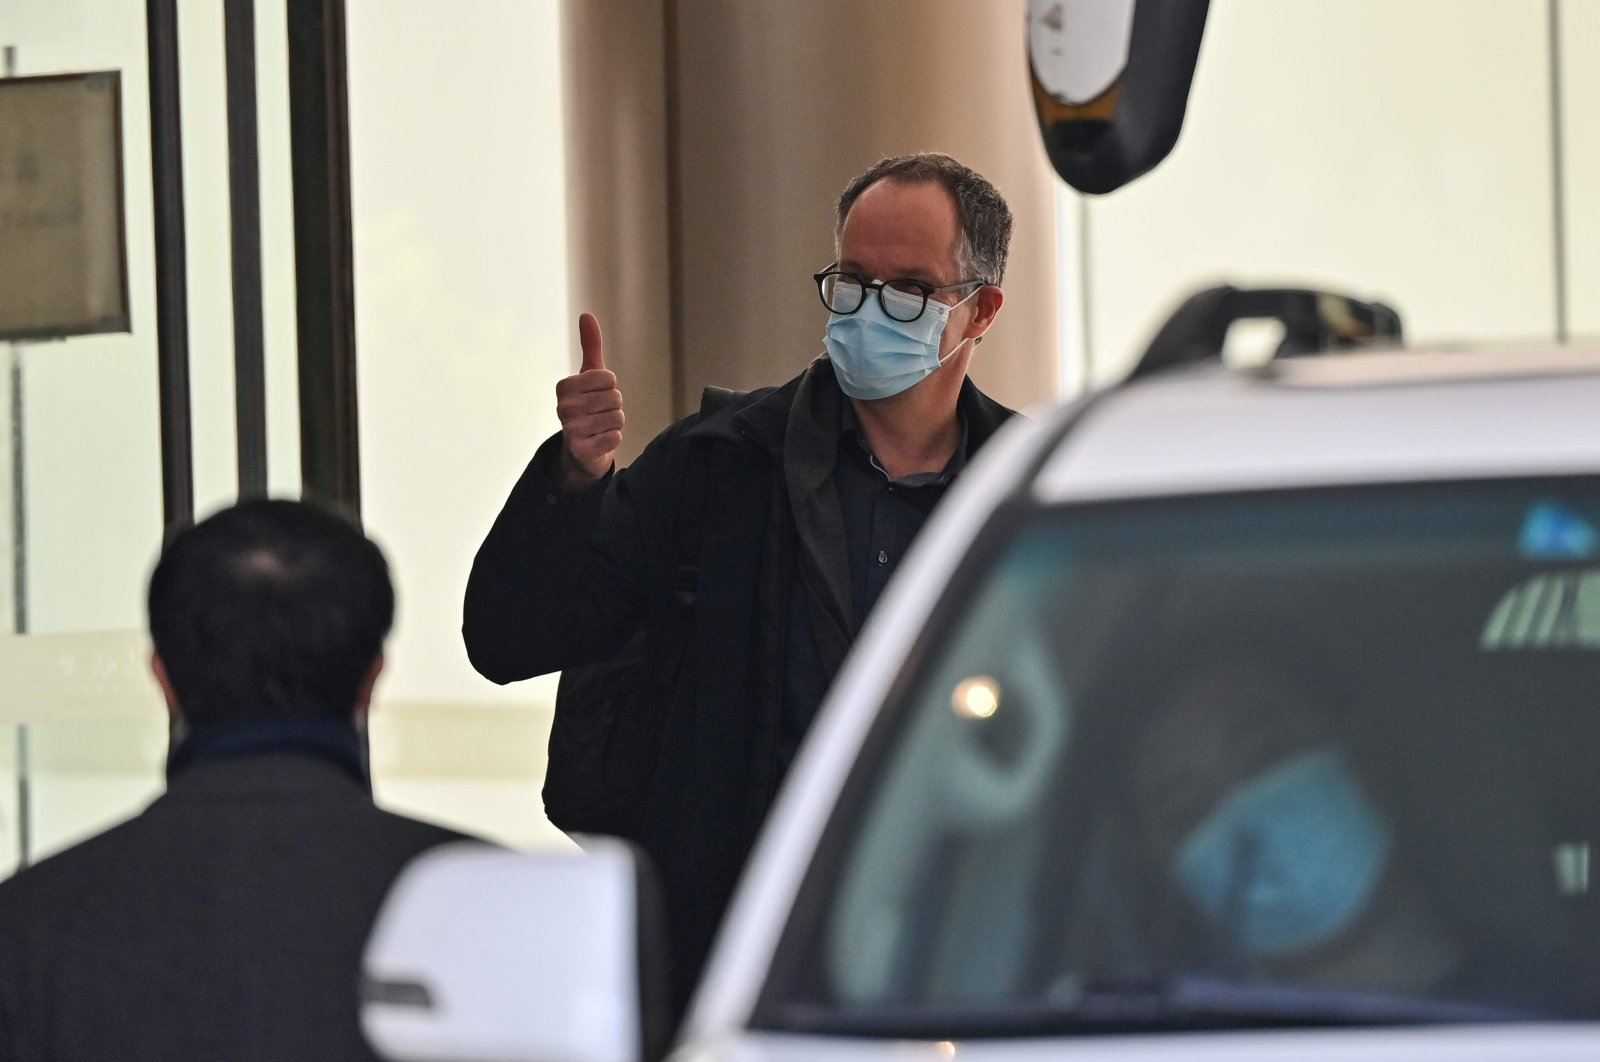 One of the members of the World Health Organization (WHO) team investigating the origins of the coronavirus pandemic gives a thumbs-up as he leaves The Jade Hotel after completing quarantine in Wuhan, central Hubei province, China, Jan. 28, 2021. (AFP Photo)